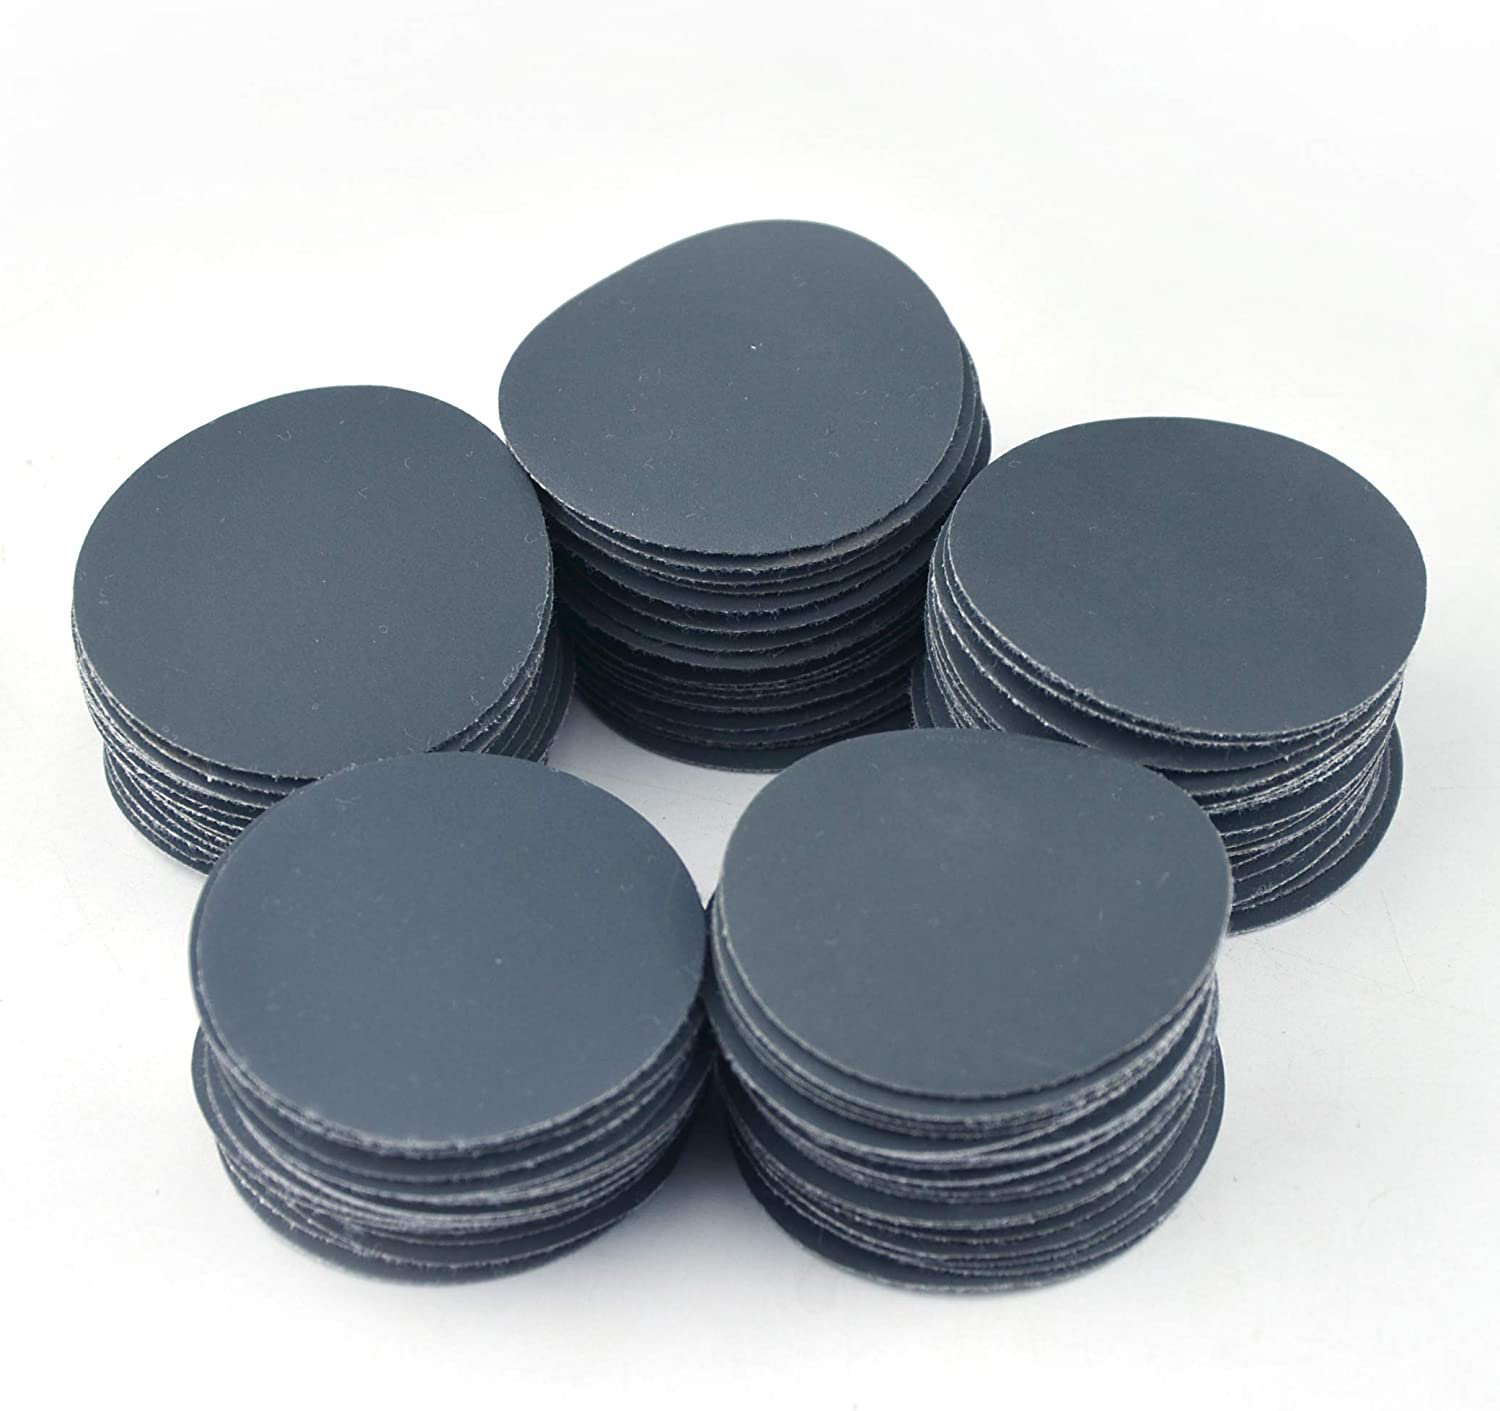 2-Inch Hook and Loop Sanding Disc Wet Dry Silicon Carbide 100 Grit 25 Pcs